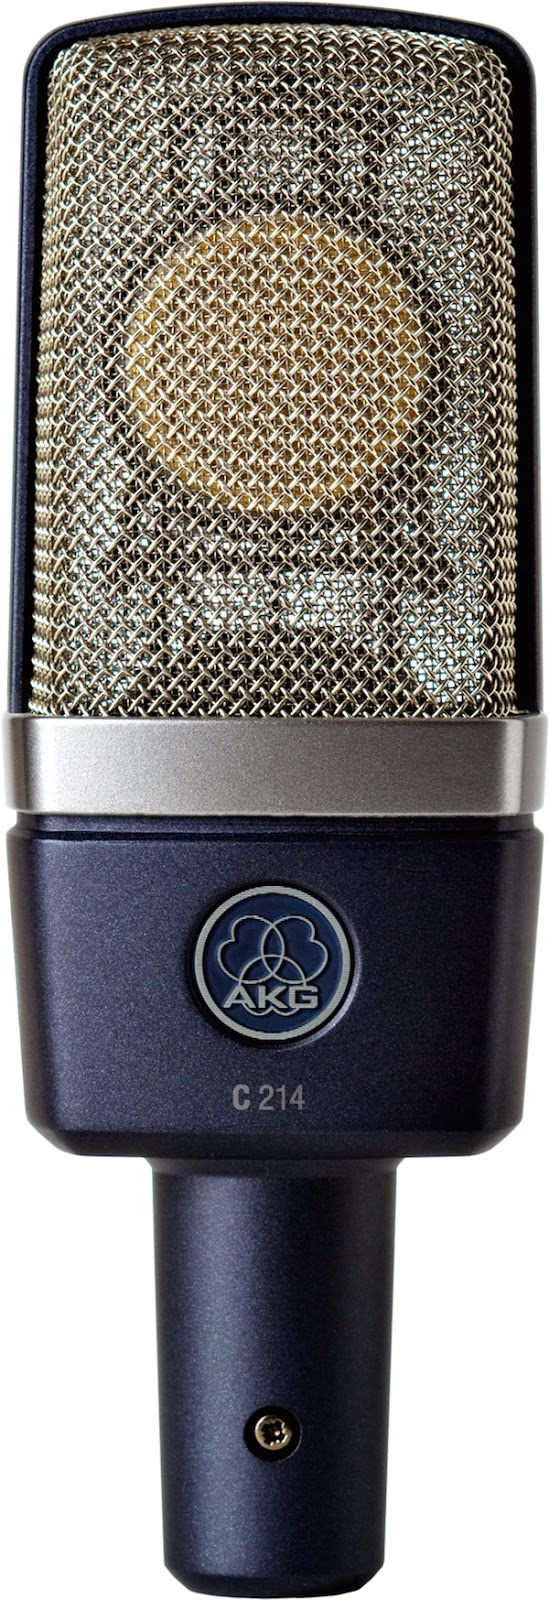 harman s akg celebrates c214 as best selling condenser microphone for studio and stage in the us. Black Bedroom Furniture Sets. Home Design Ideas